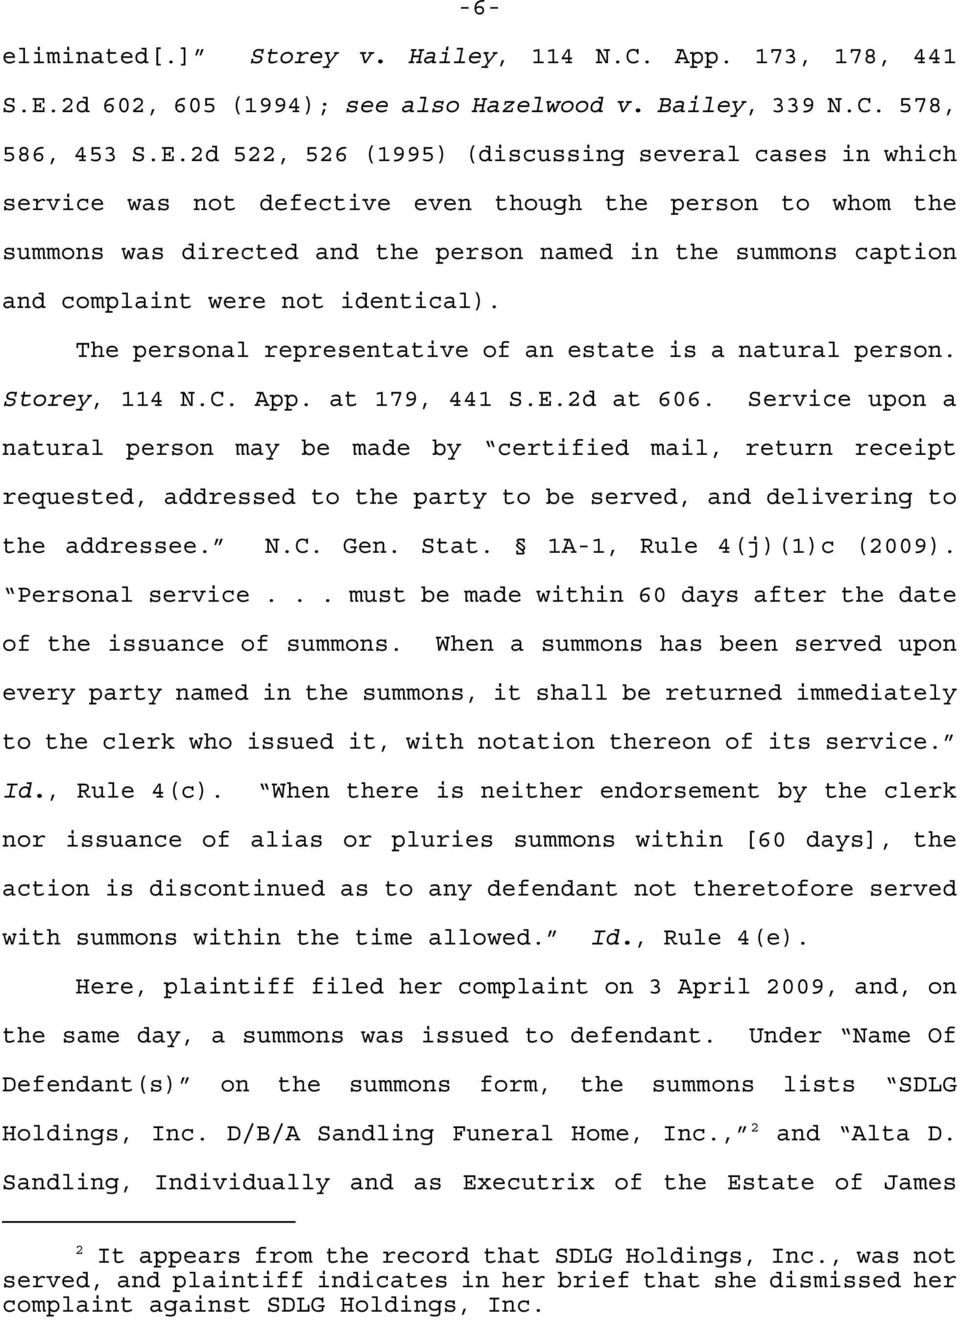 2d 522, 526 (1995) (discussing several cases in which service was not defective even though the person to whom the summons was directed and the person named in the summons caption and complaint were